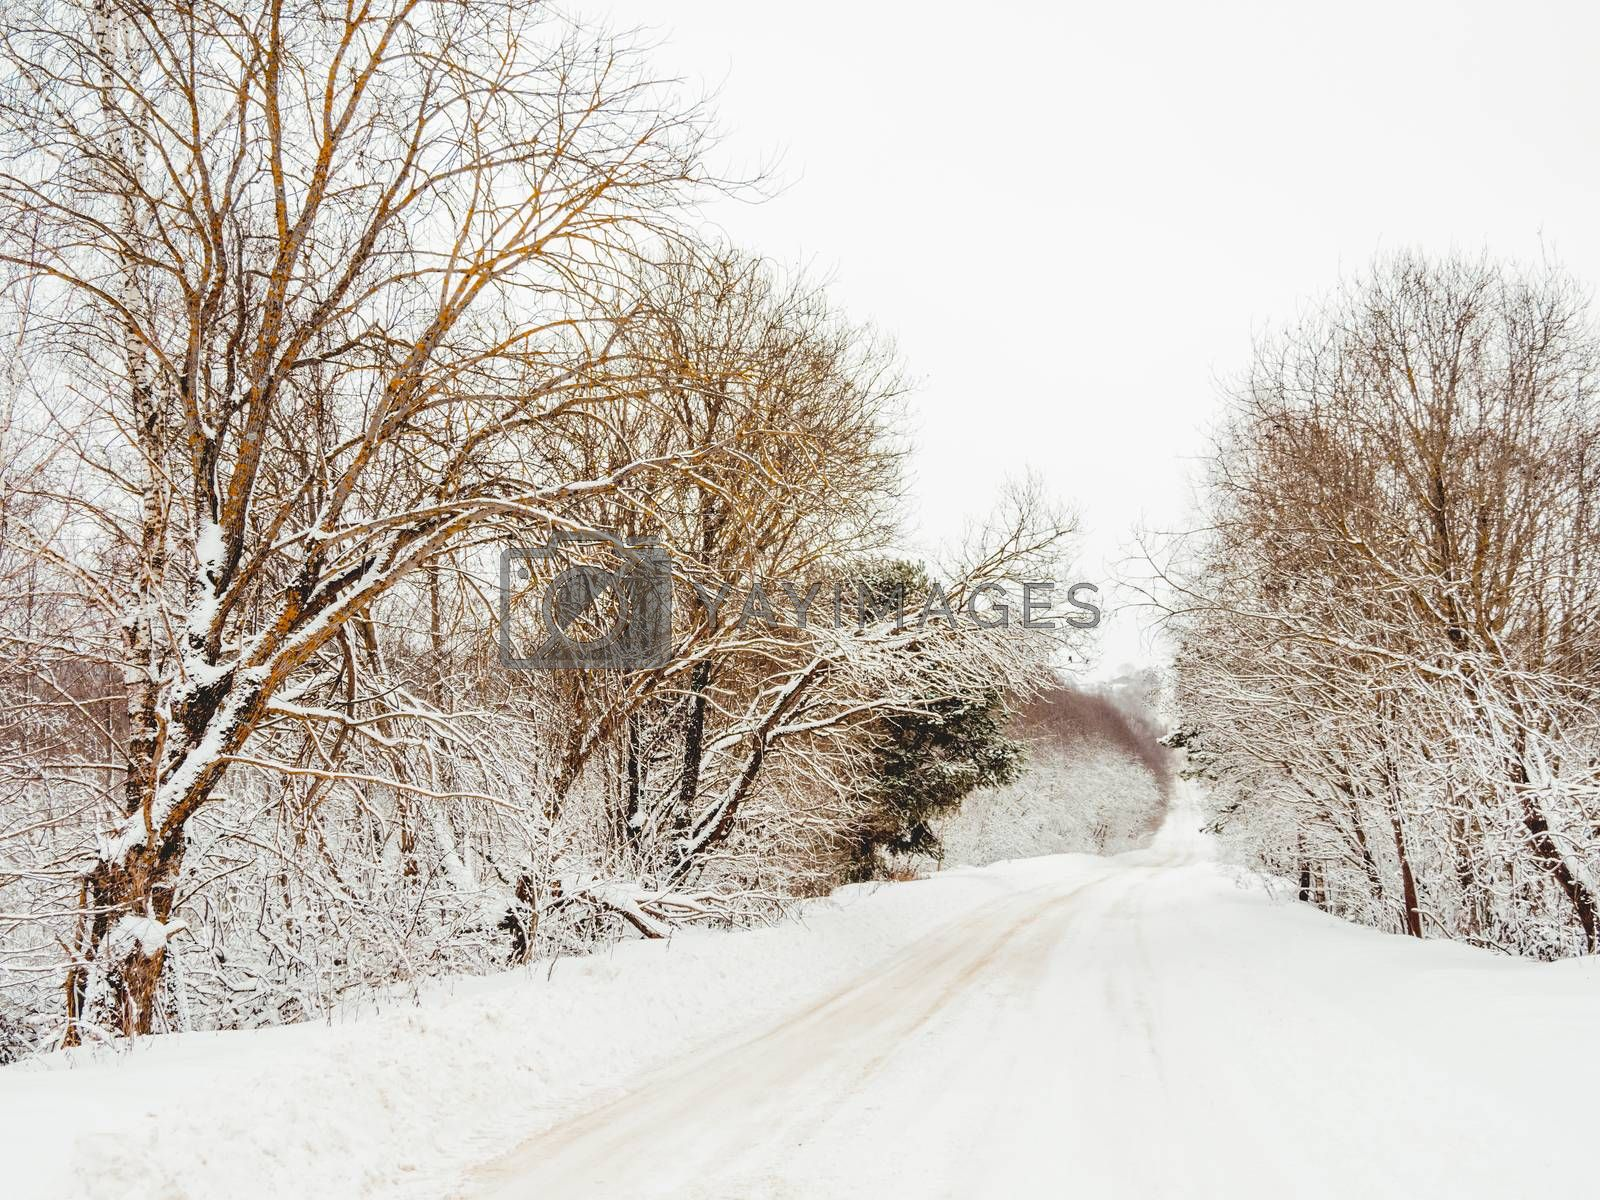 Winter natural background with trees and country road under the snow. Rural landscape. Countryside.